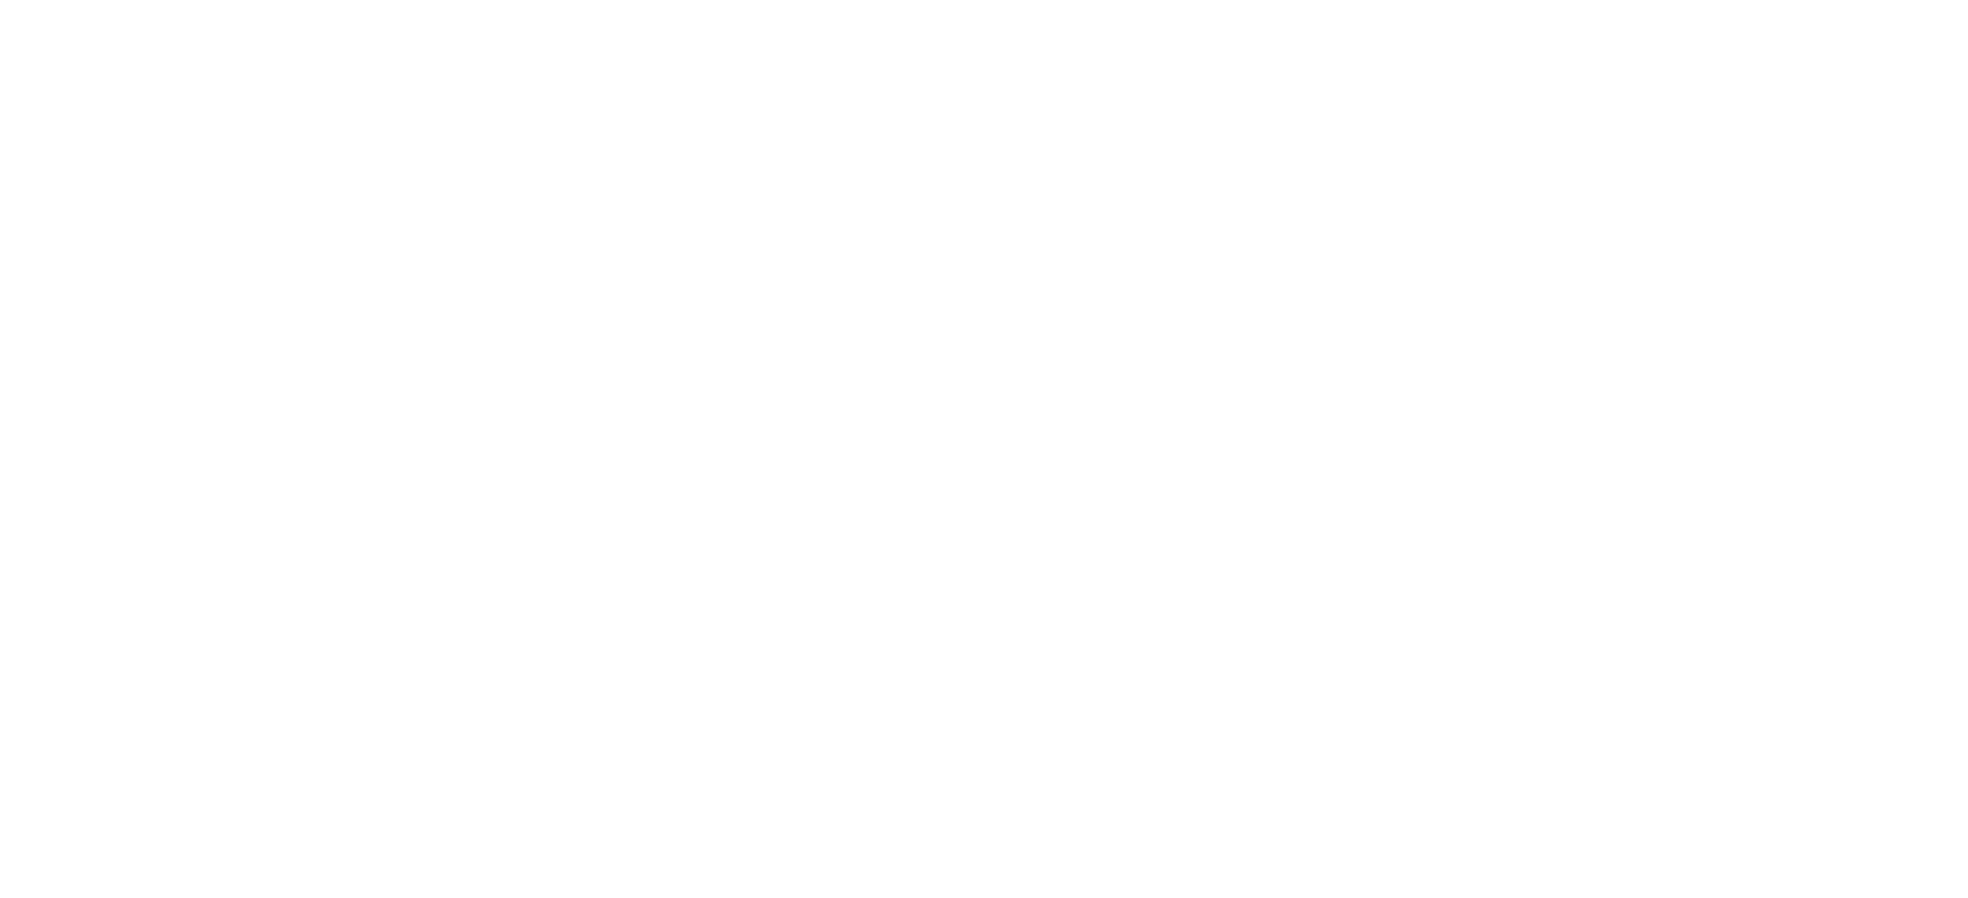 United Expeditions